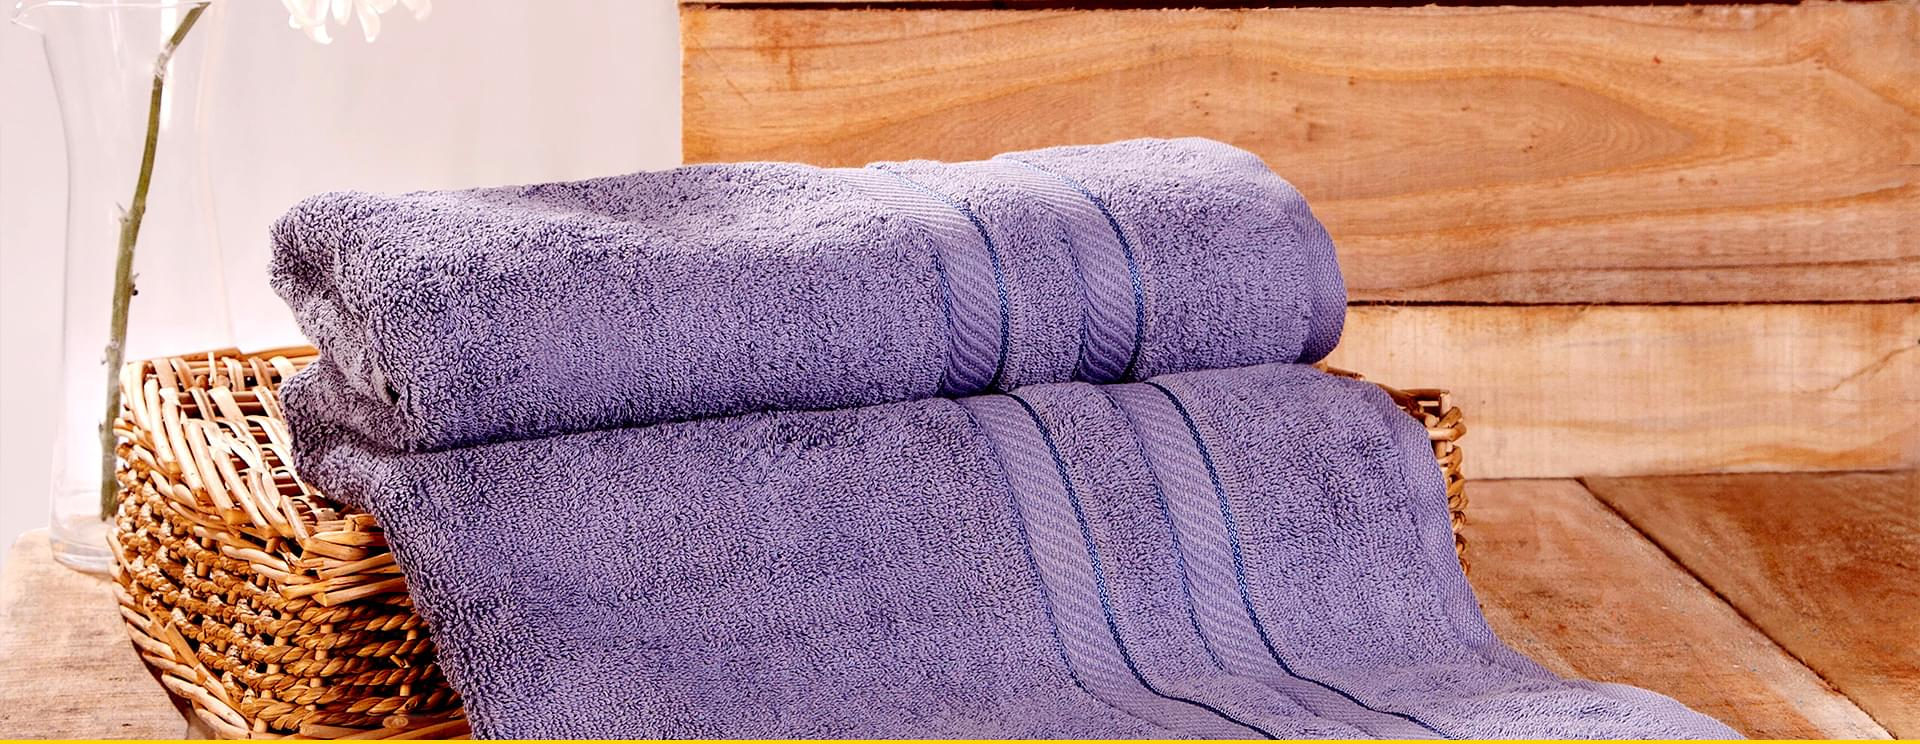 , Tips To Keep Your Towel Smell Fresh, ILEF HOME APPAREEL